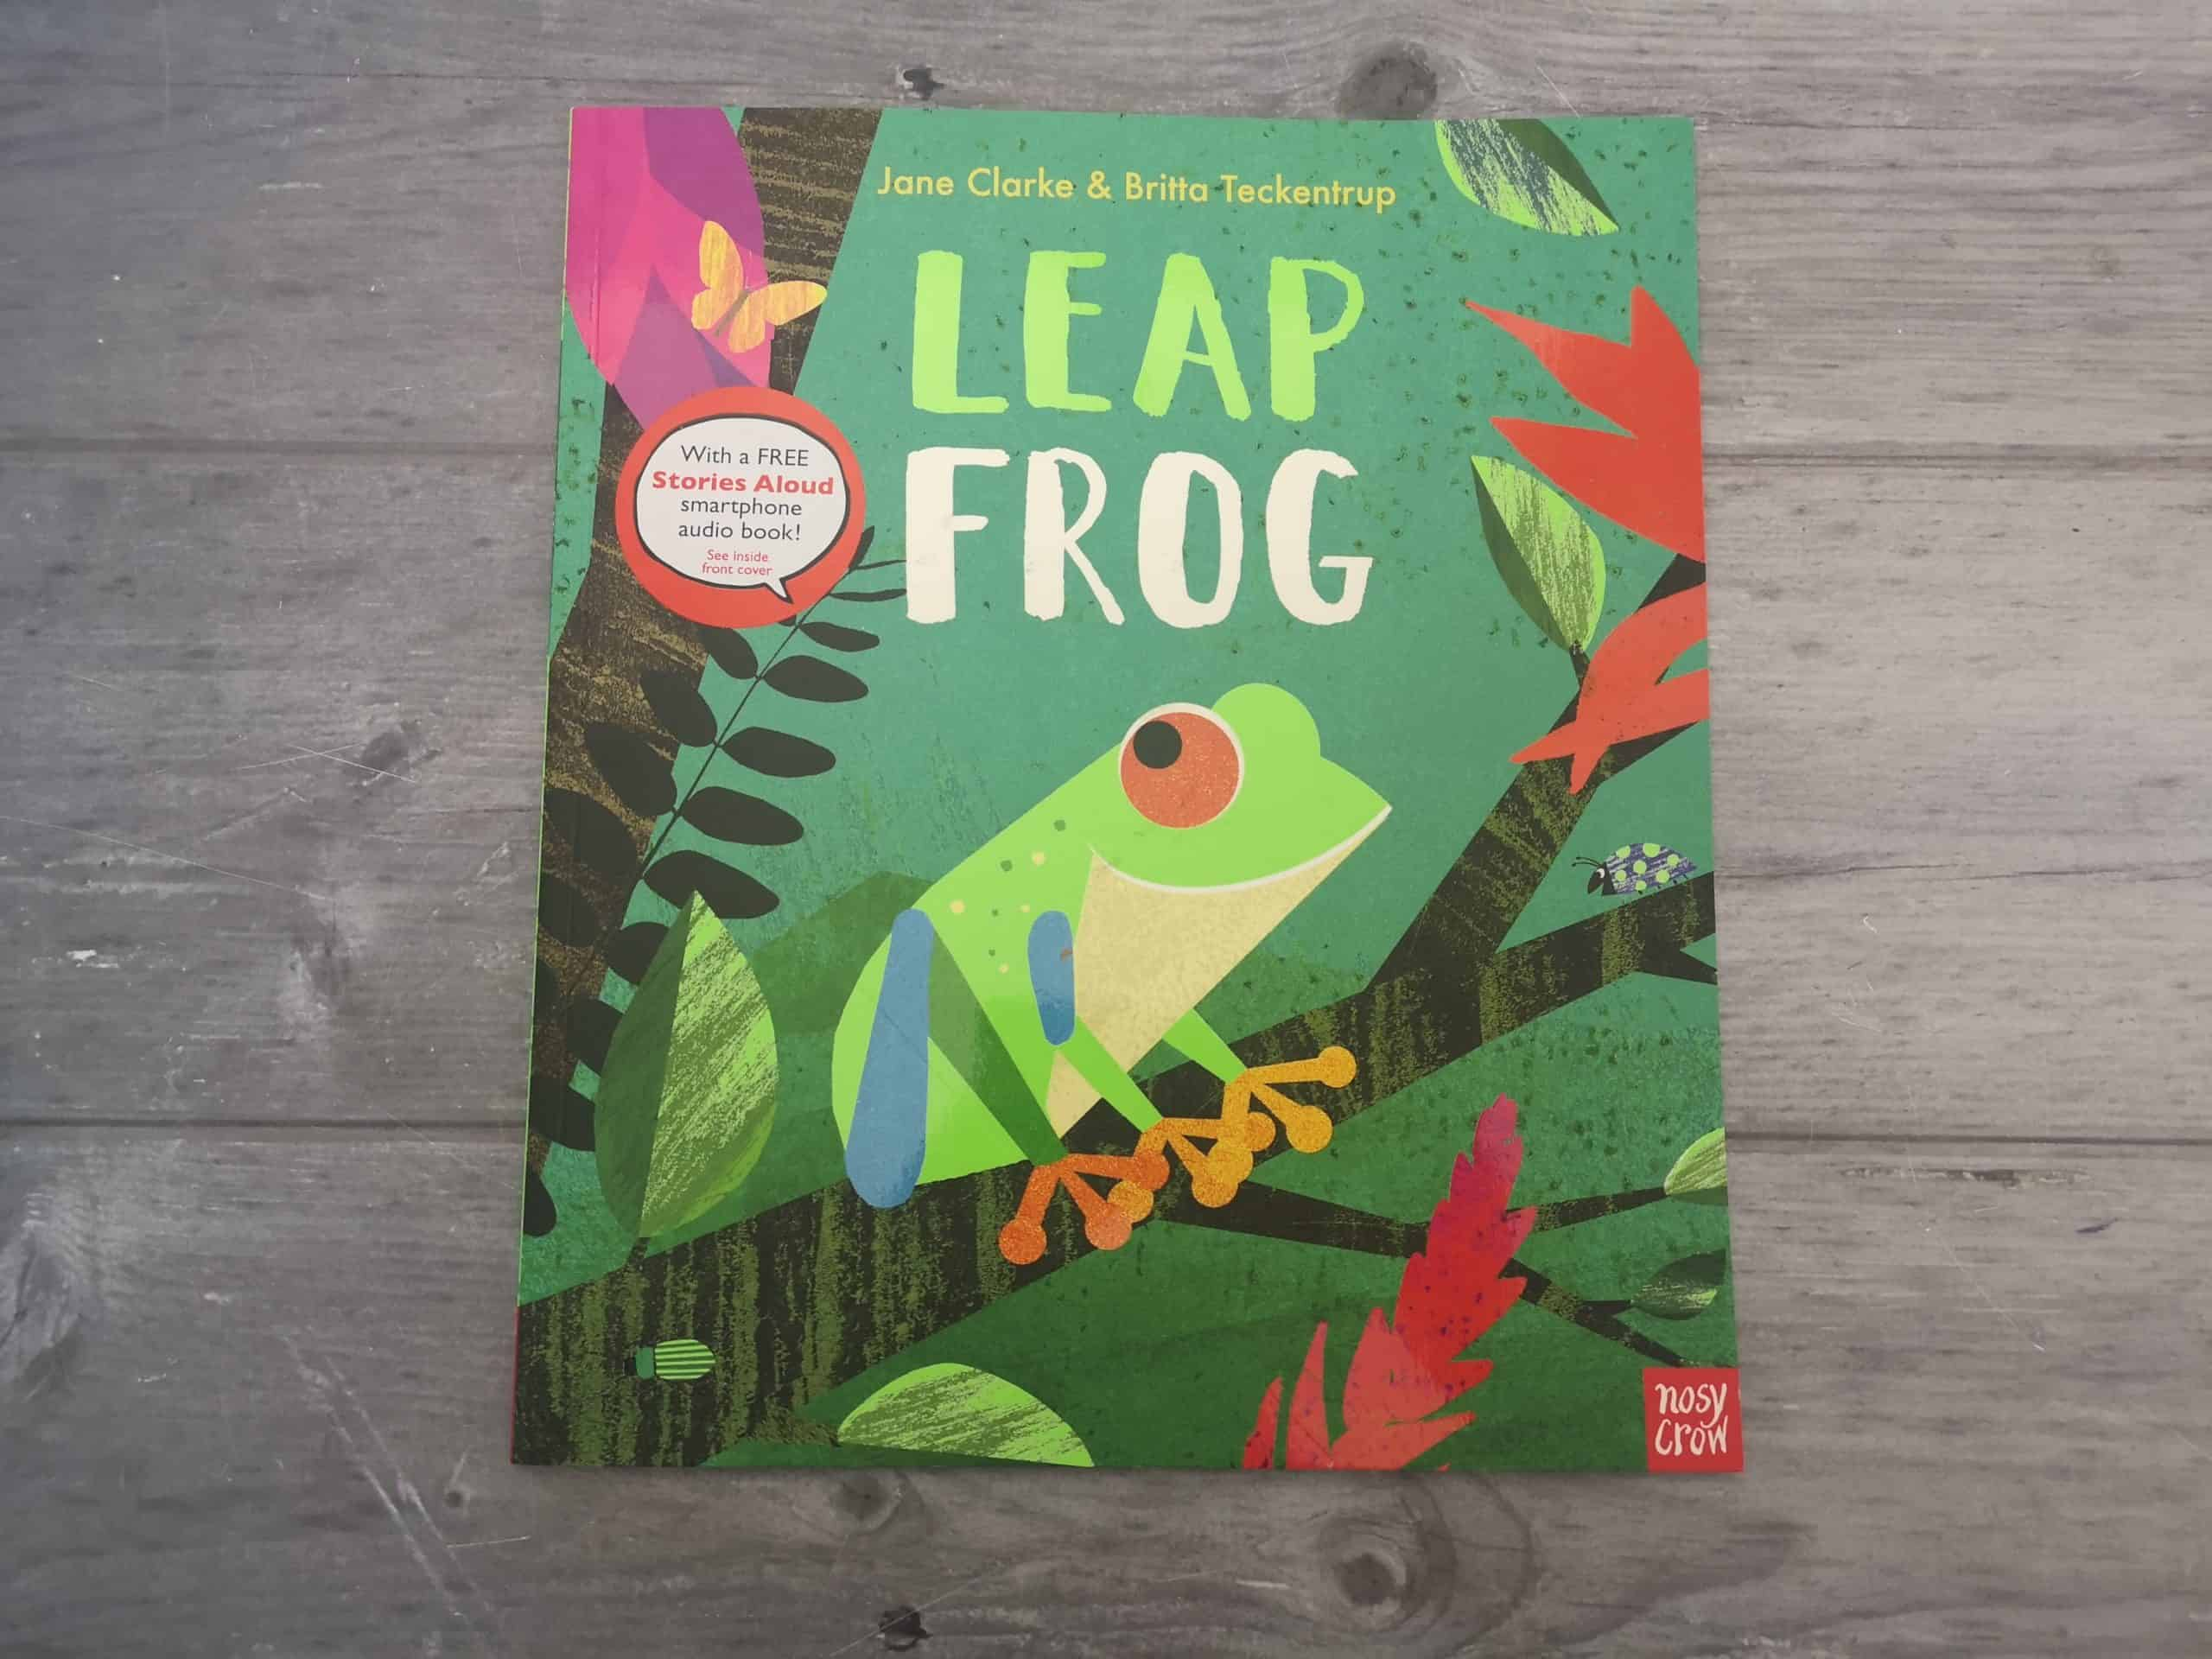 Leap Frog from by Jane Clarke and Britta Teckentrup